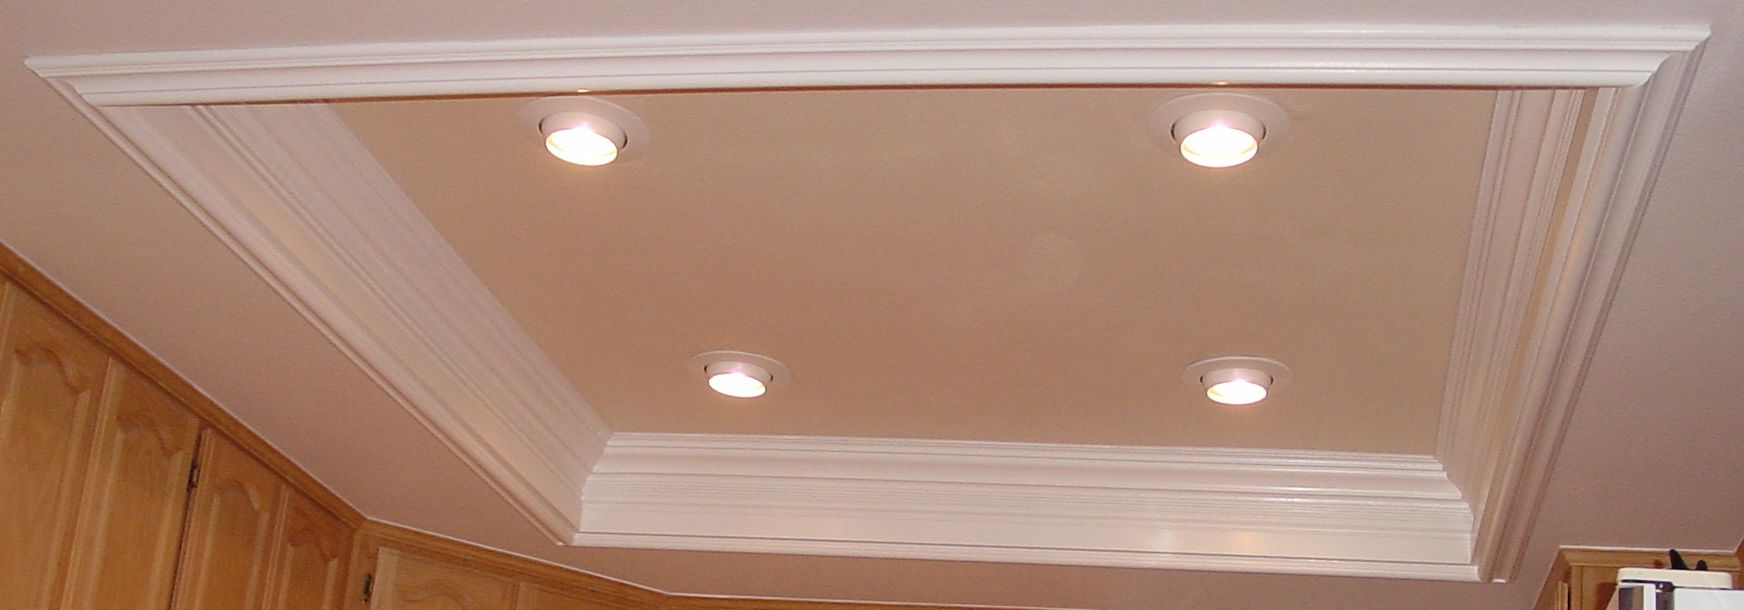 Lovely Recessed Kitchen Lighting